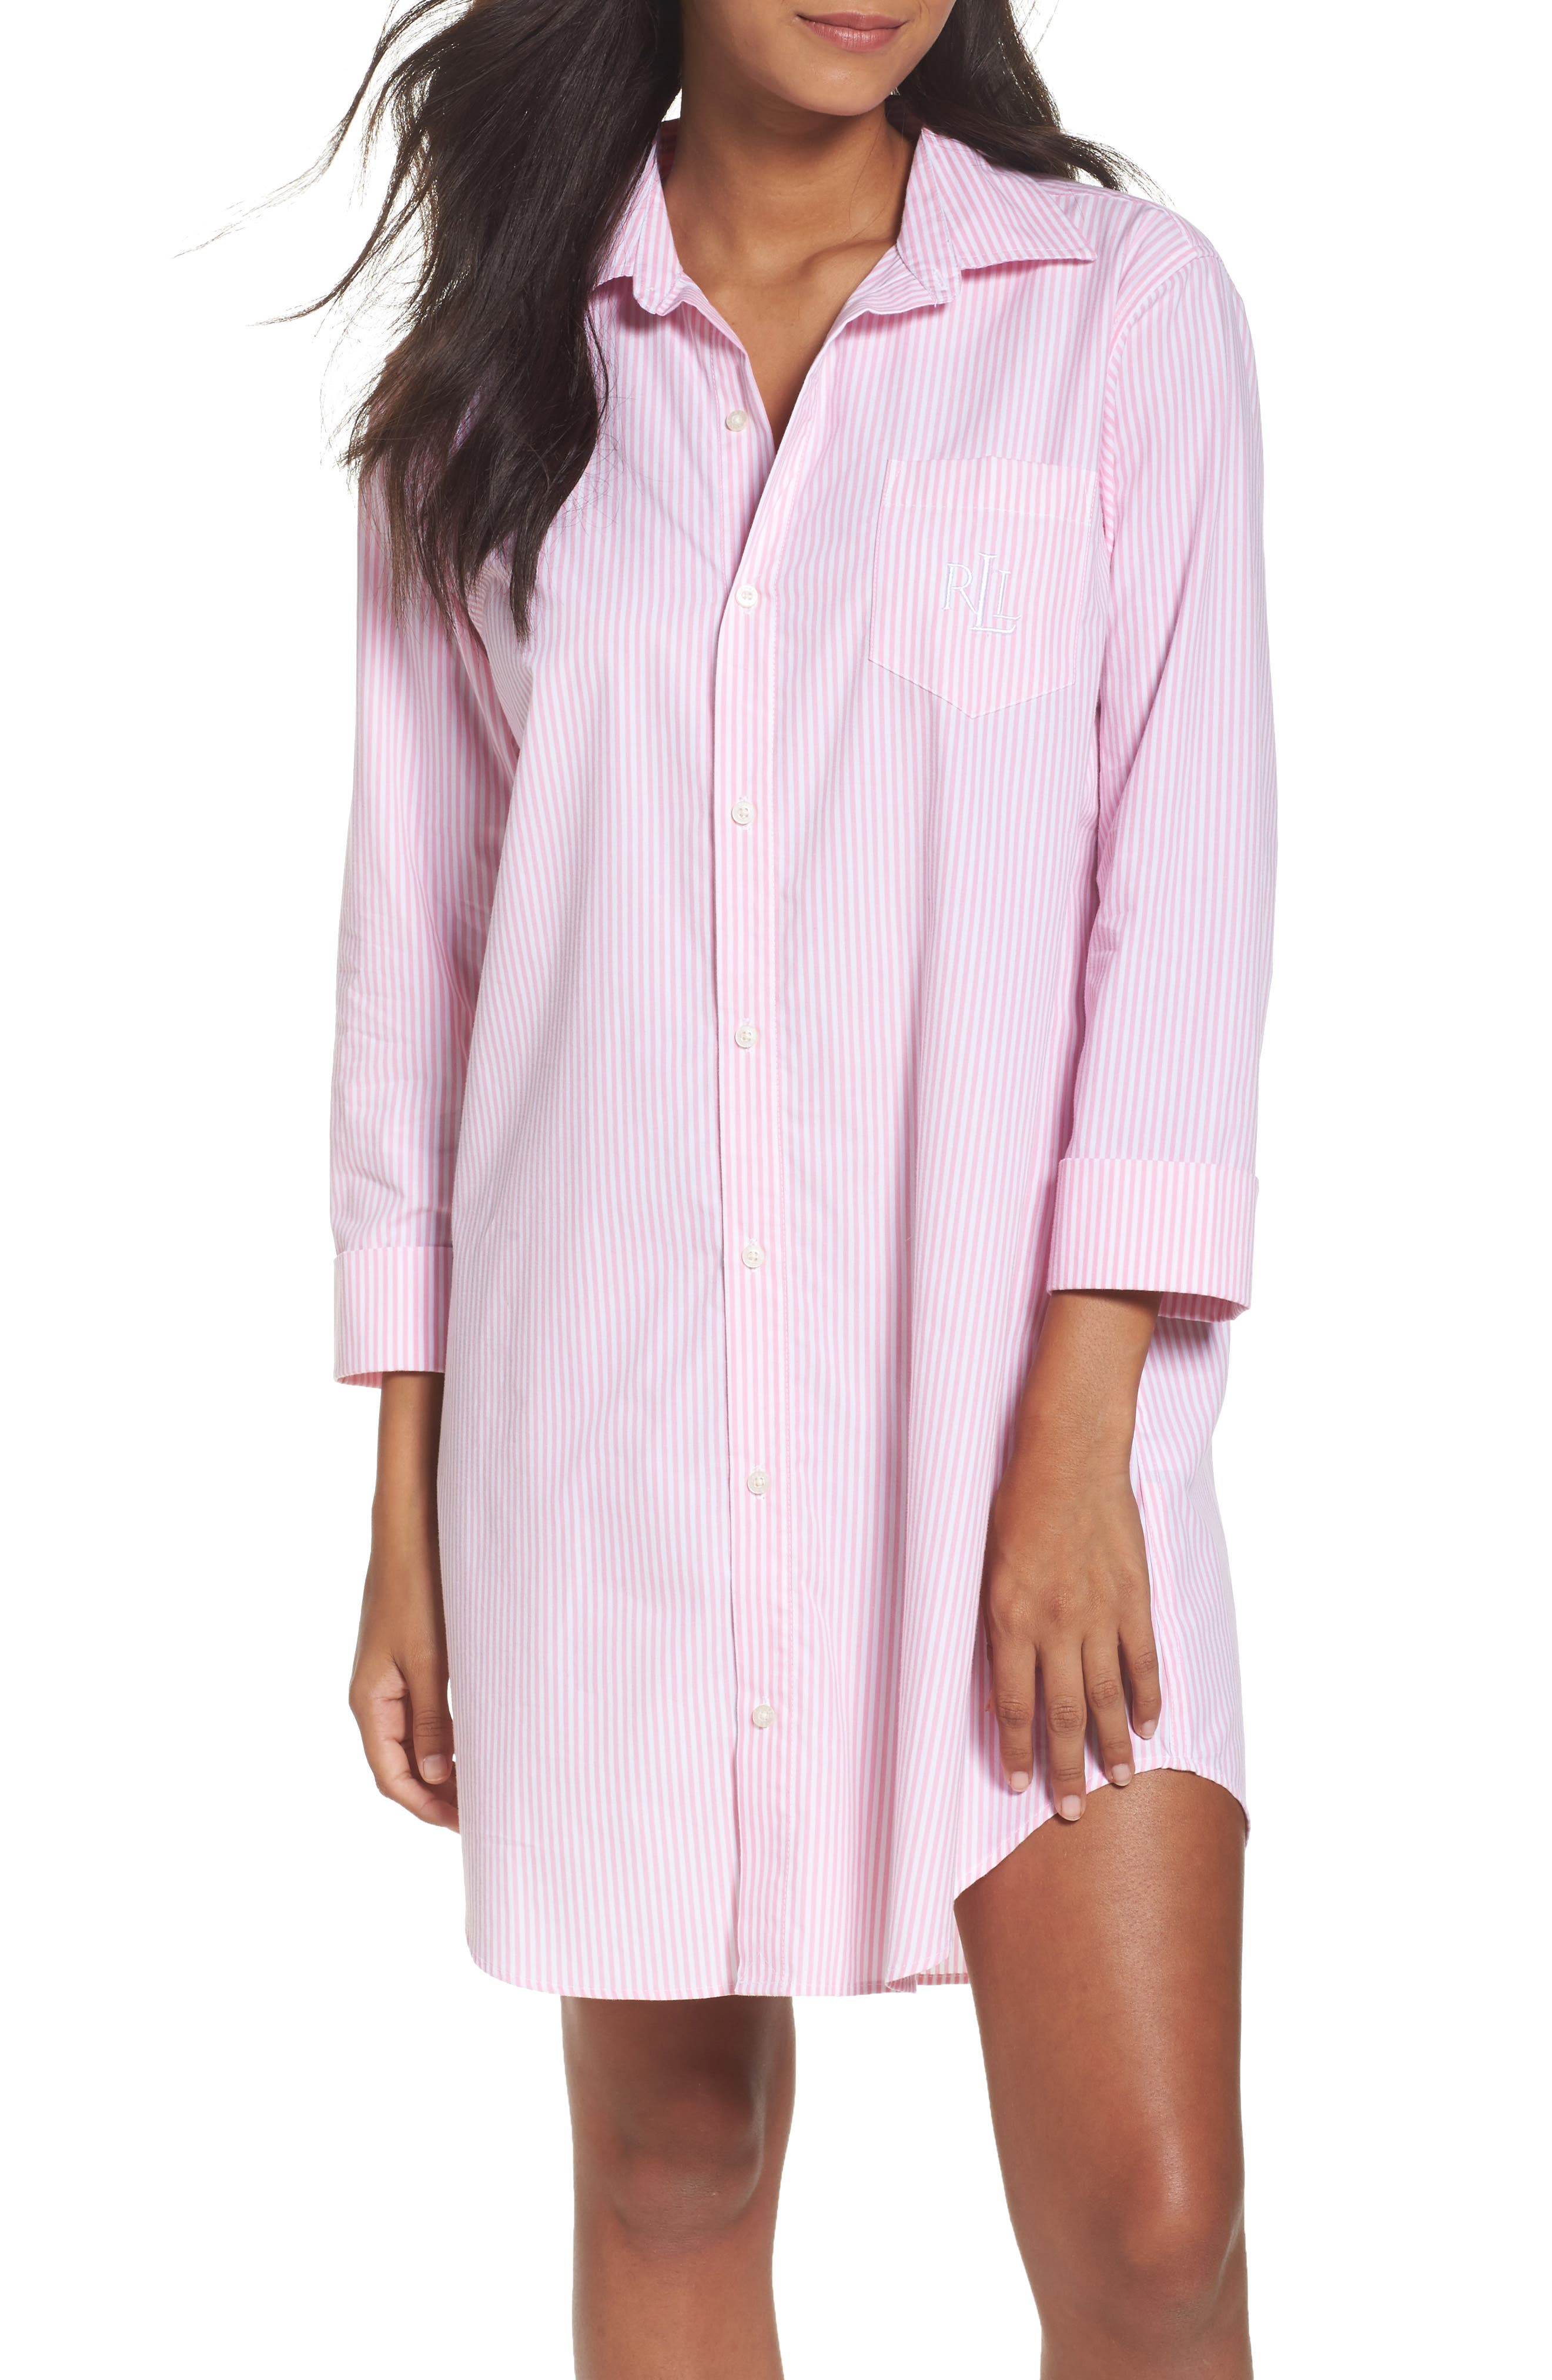 Cotton Poplin Sleep Shirt,                         Main,                         color, Stripe Lagoon Pink/ White